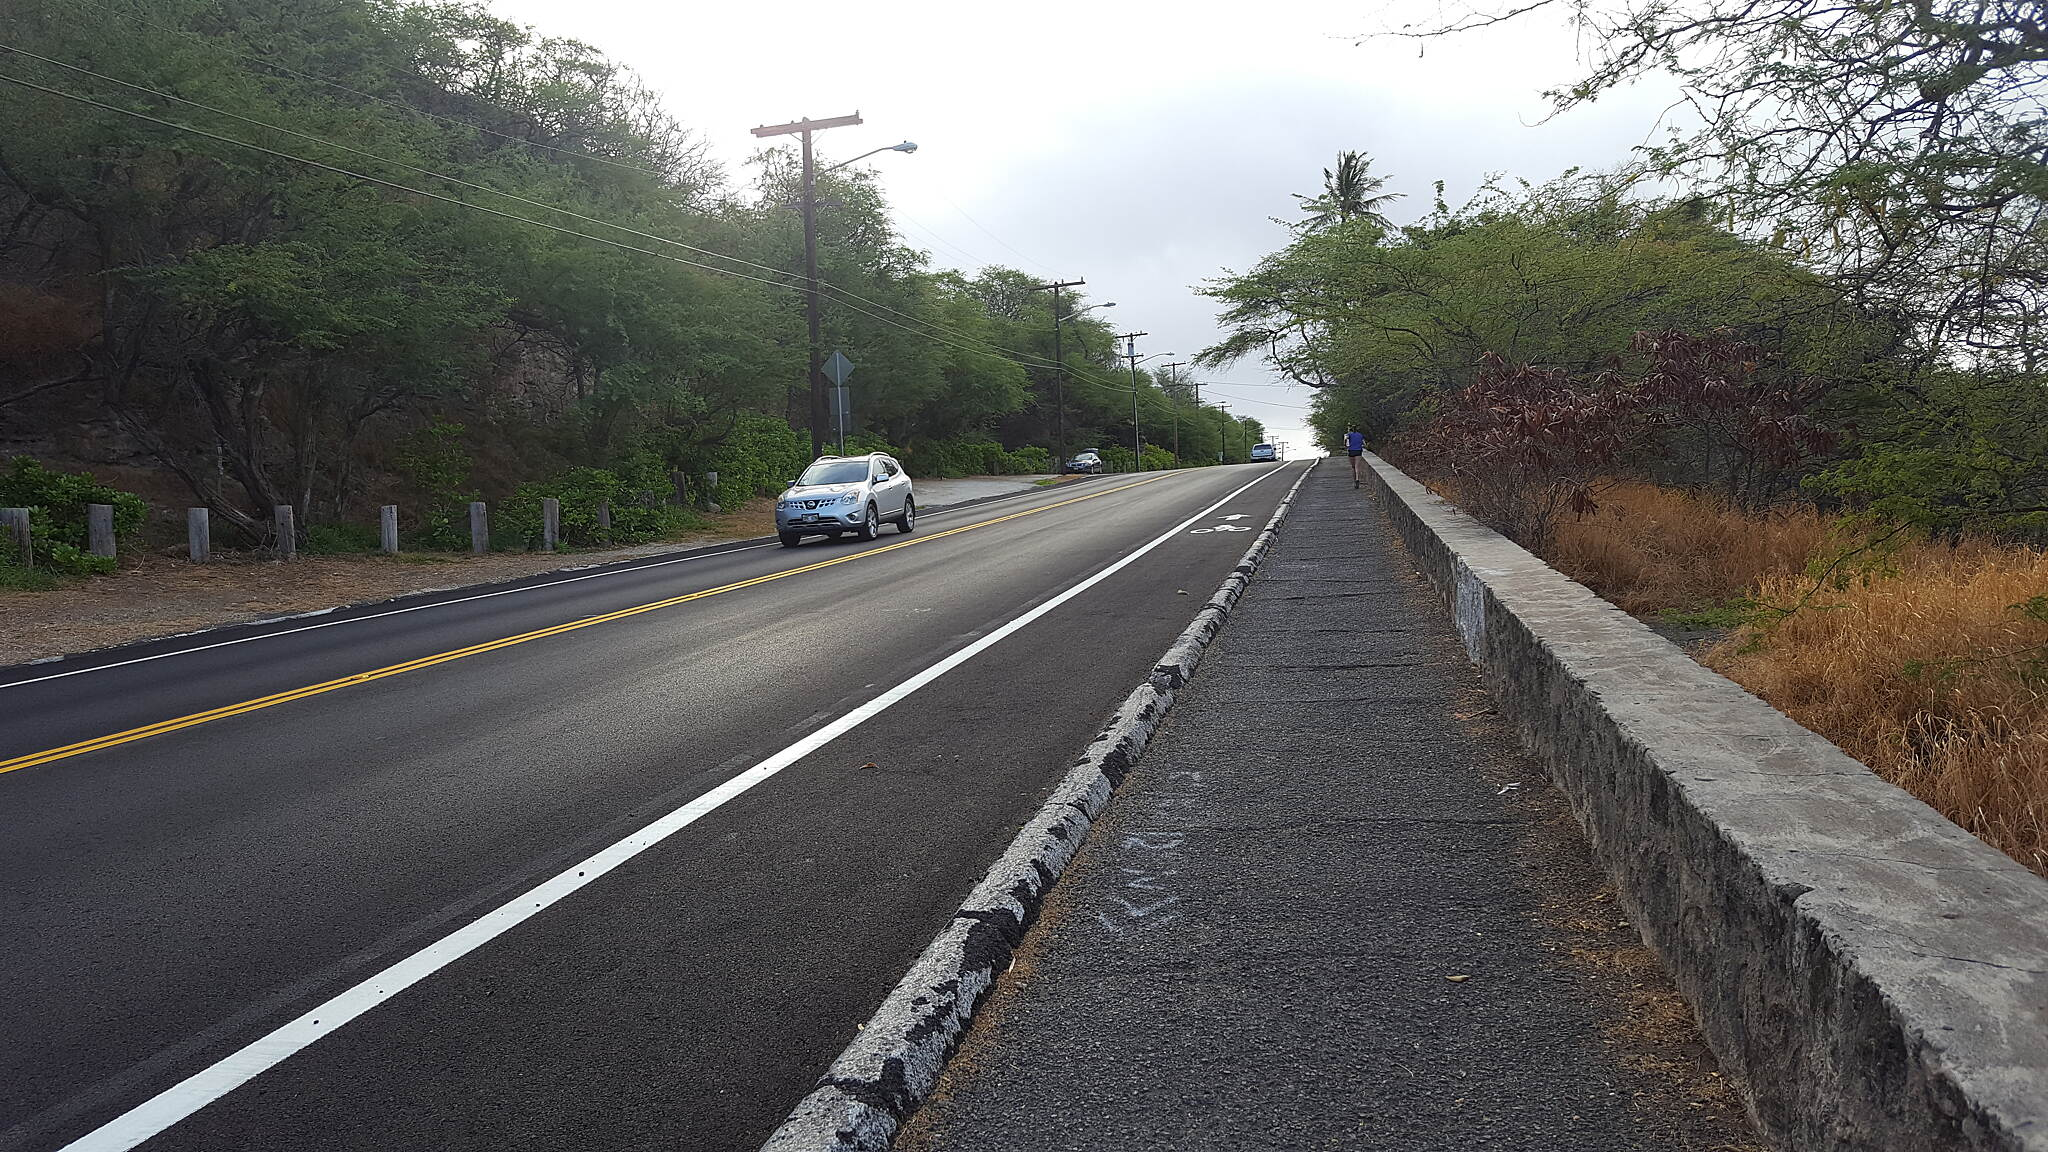 Ala Wai Canal Promenade Leading2diamondhead Long run til up hill